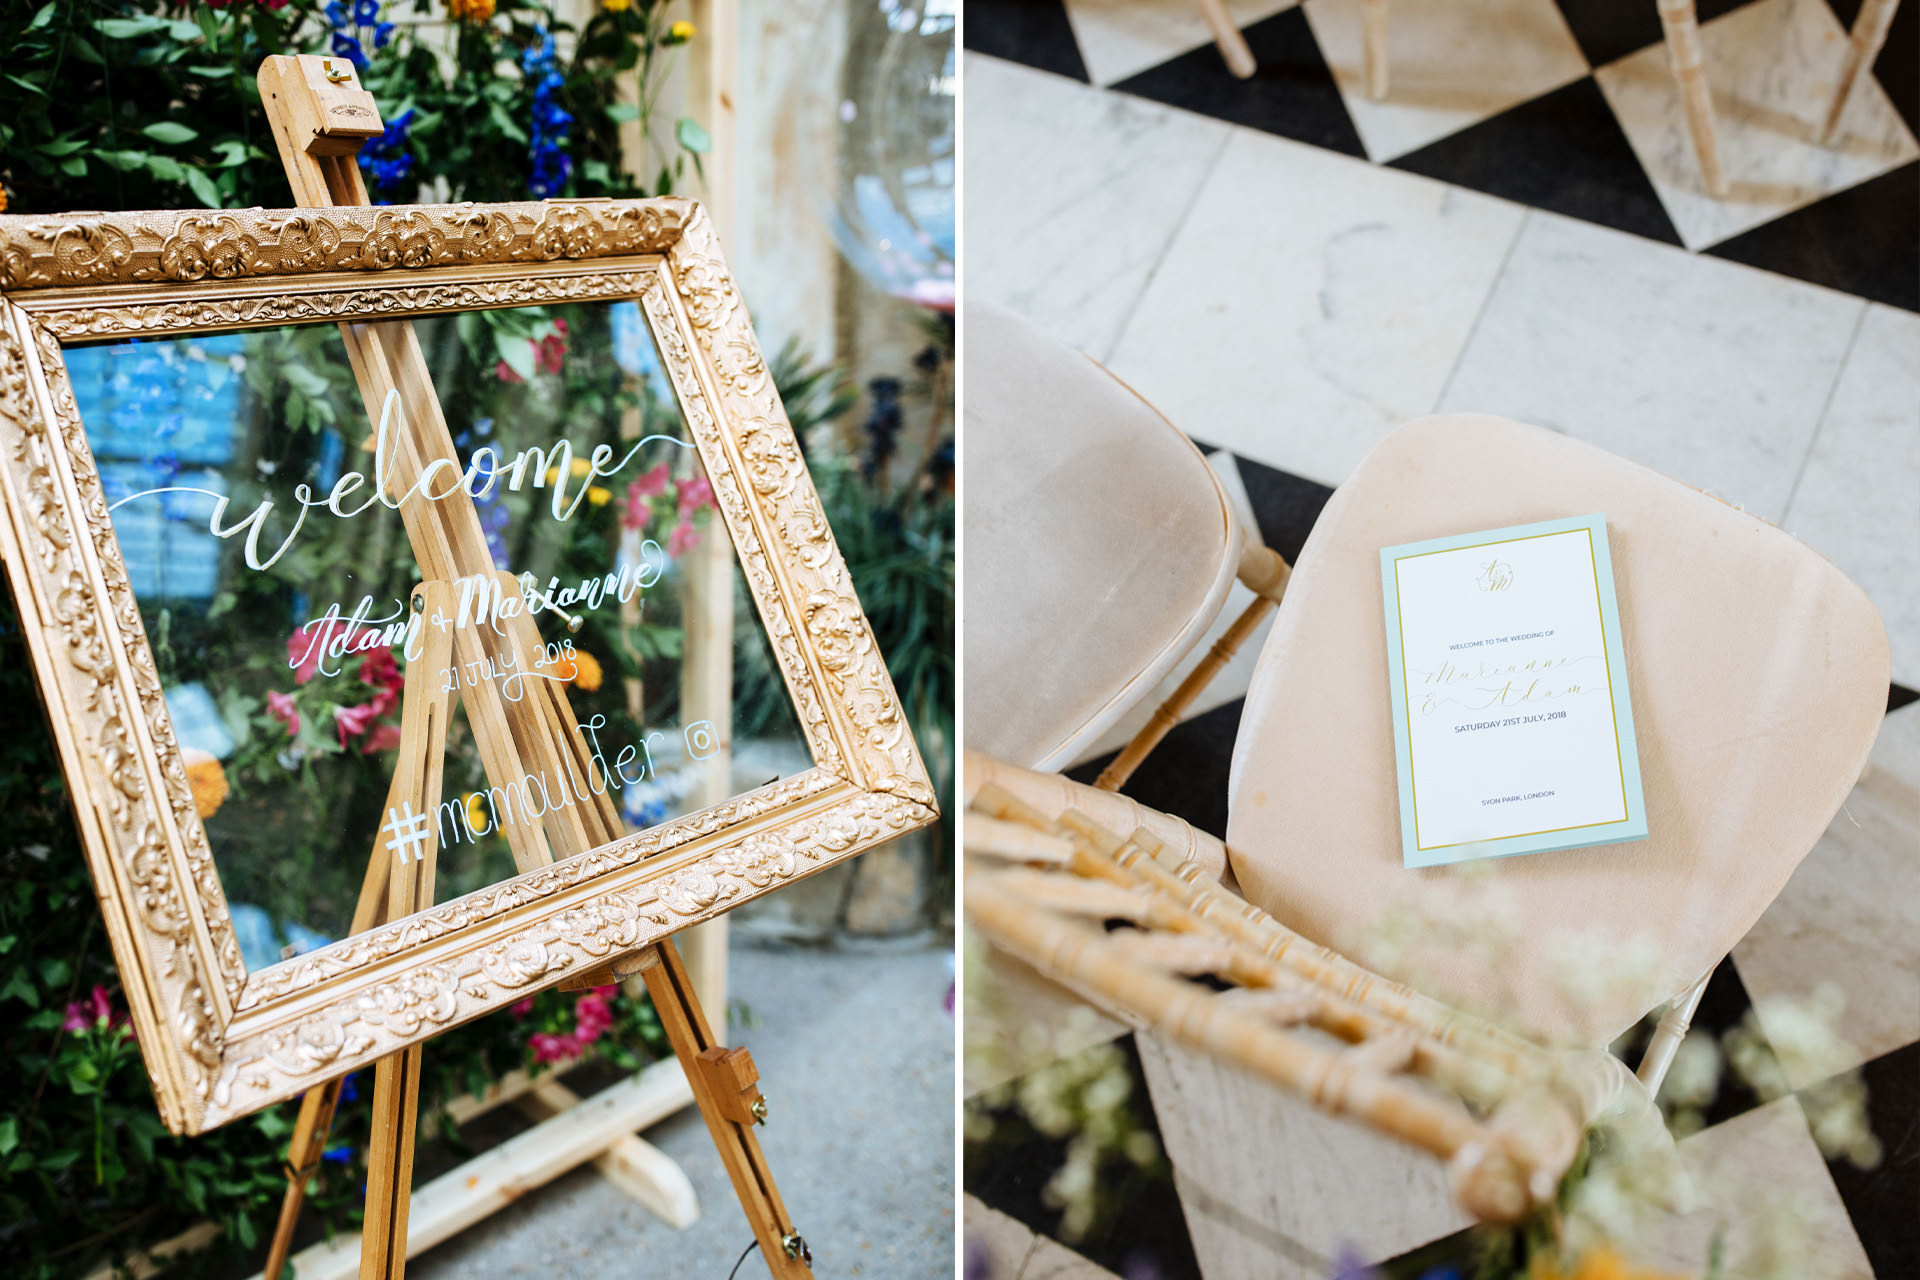 gold photo frame with wedding details in calligraphy in front of flower wall